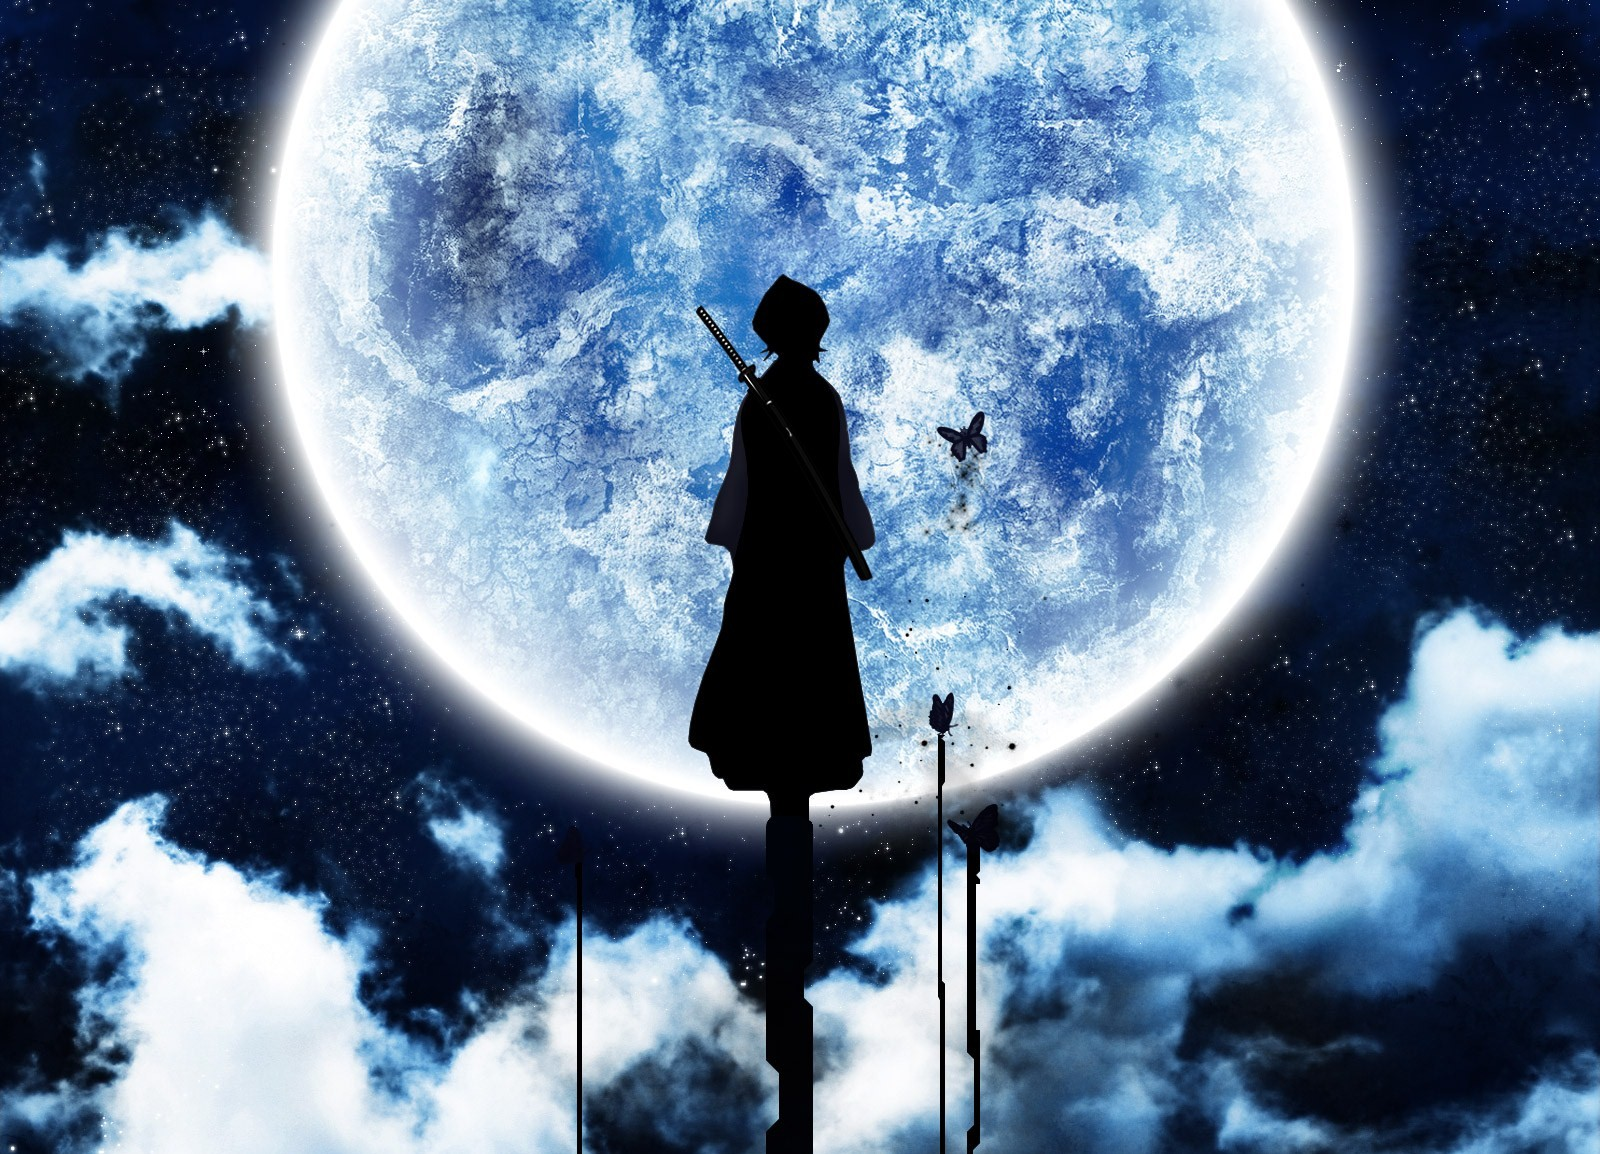 Best-Anime-Backgrounds-Cool-wallpaper-wp3603207